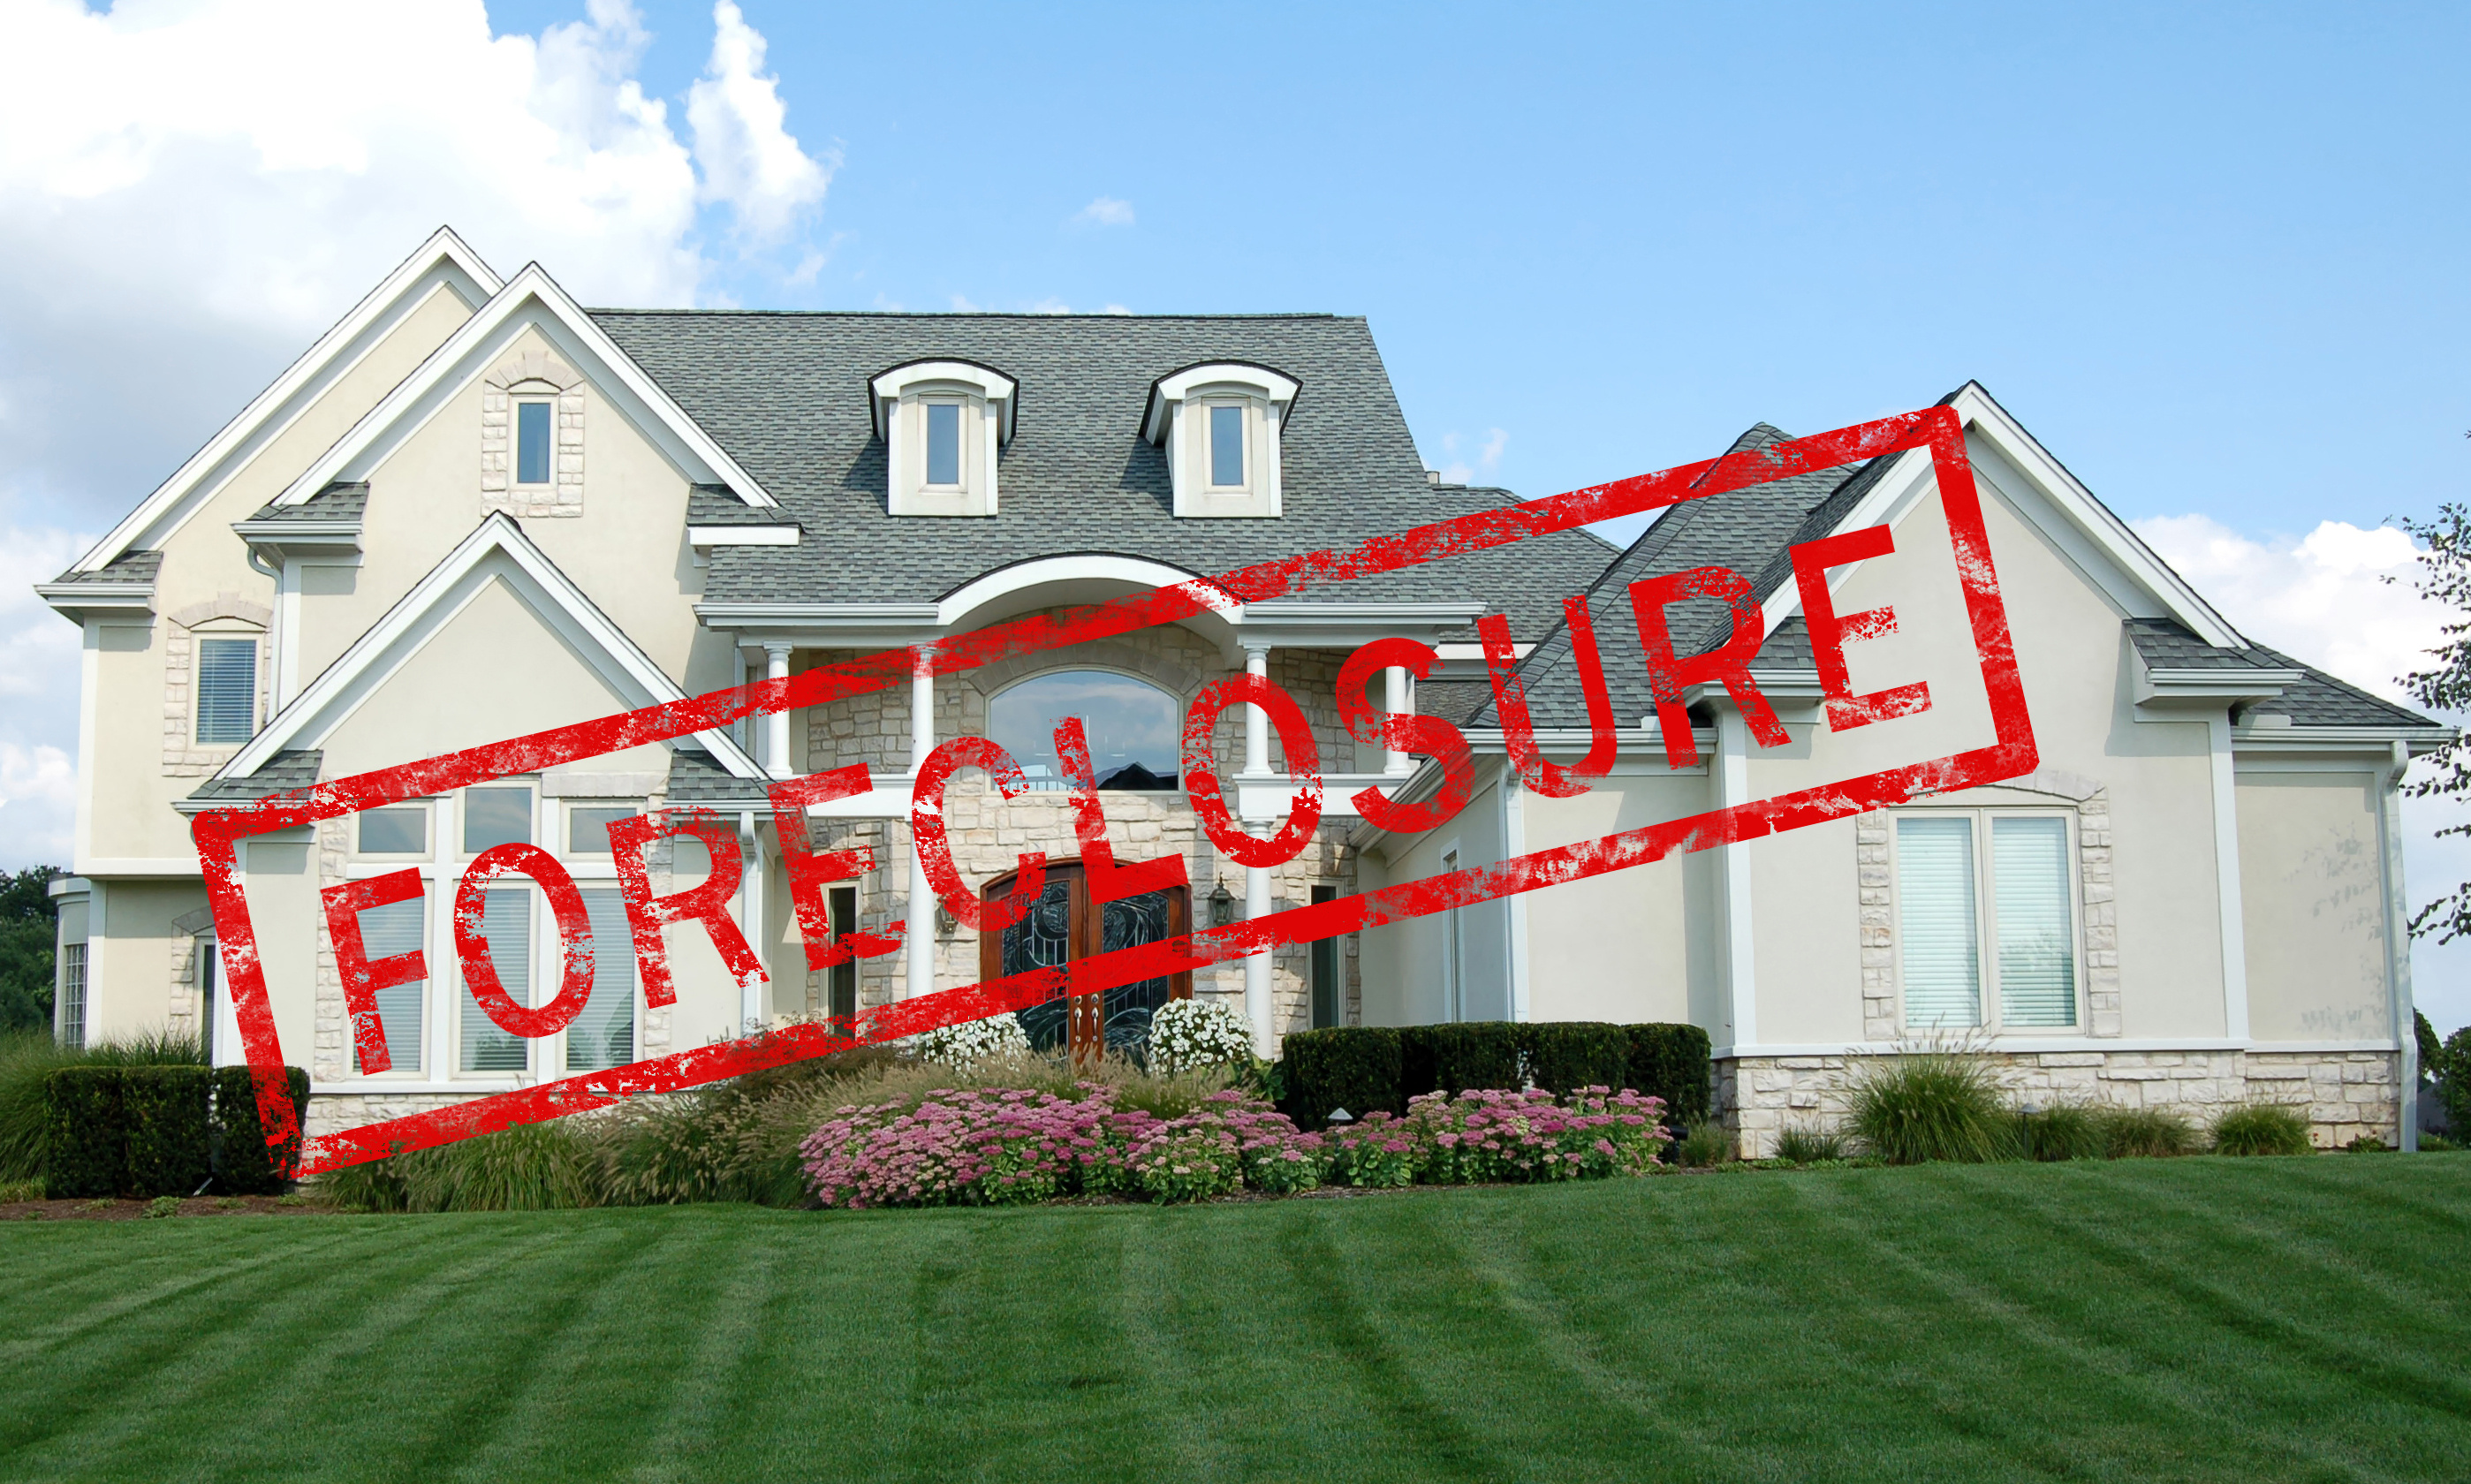 Call Phoenix Valuations, LLC to discuss valuations for Maricopa foreclosures